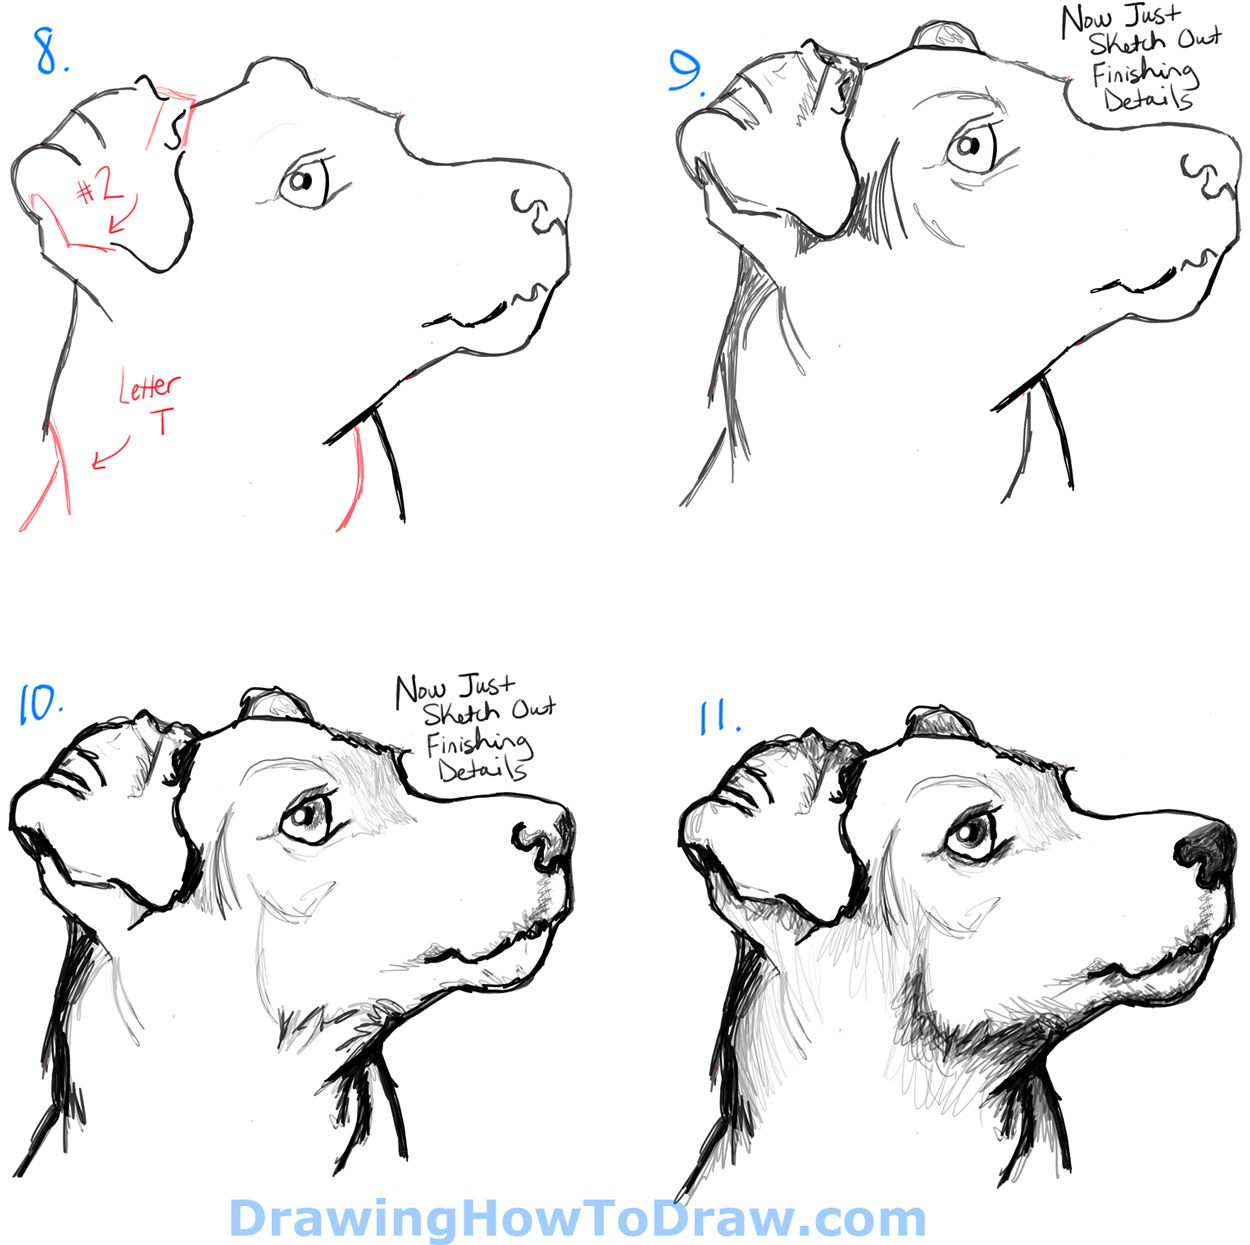 How To Draw A Terrier S Face Dog S Face With Easy Steps How To Draw Step By Step Drawing Tutorials Dog Face Drawing Dog Drawing Simple Dog Drawing